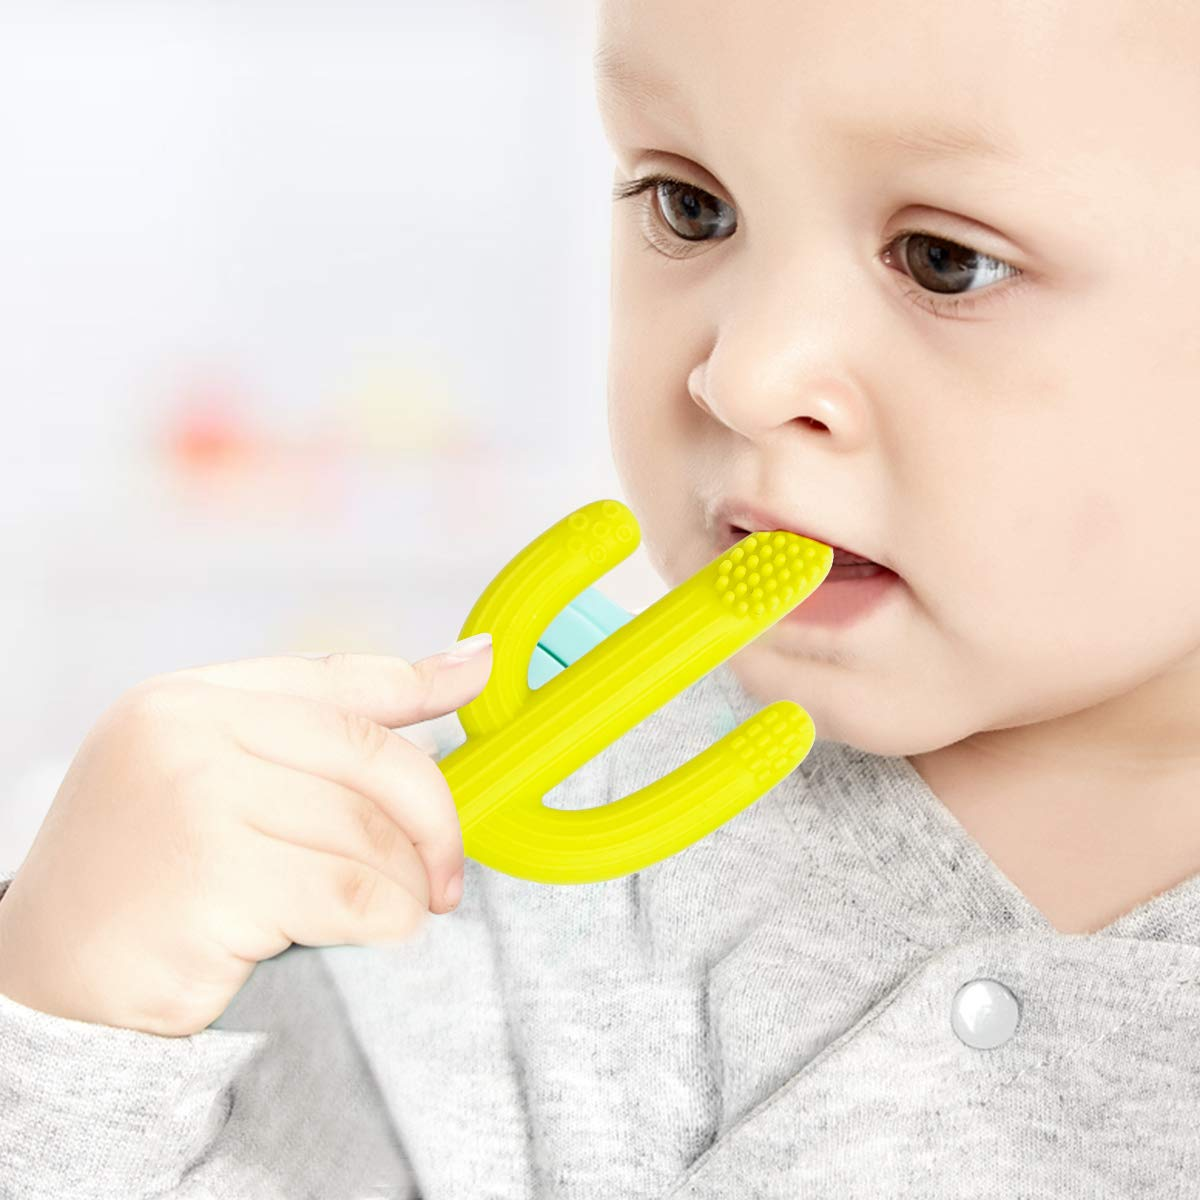 BPA Free Toothbrush Soothing with Gum Massaging Green+Yellow Vicsou Silicone Baby Teether FDA Approved 2 Packs Infant Teething Toy